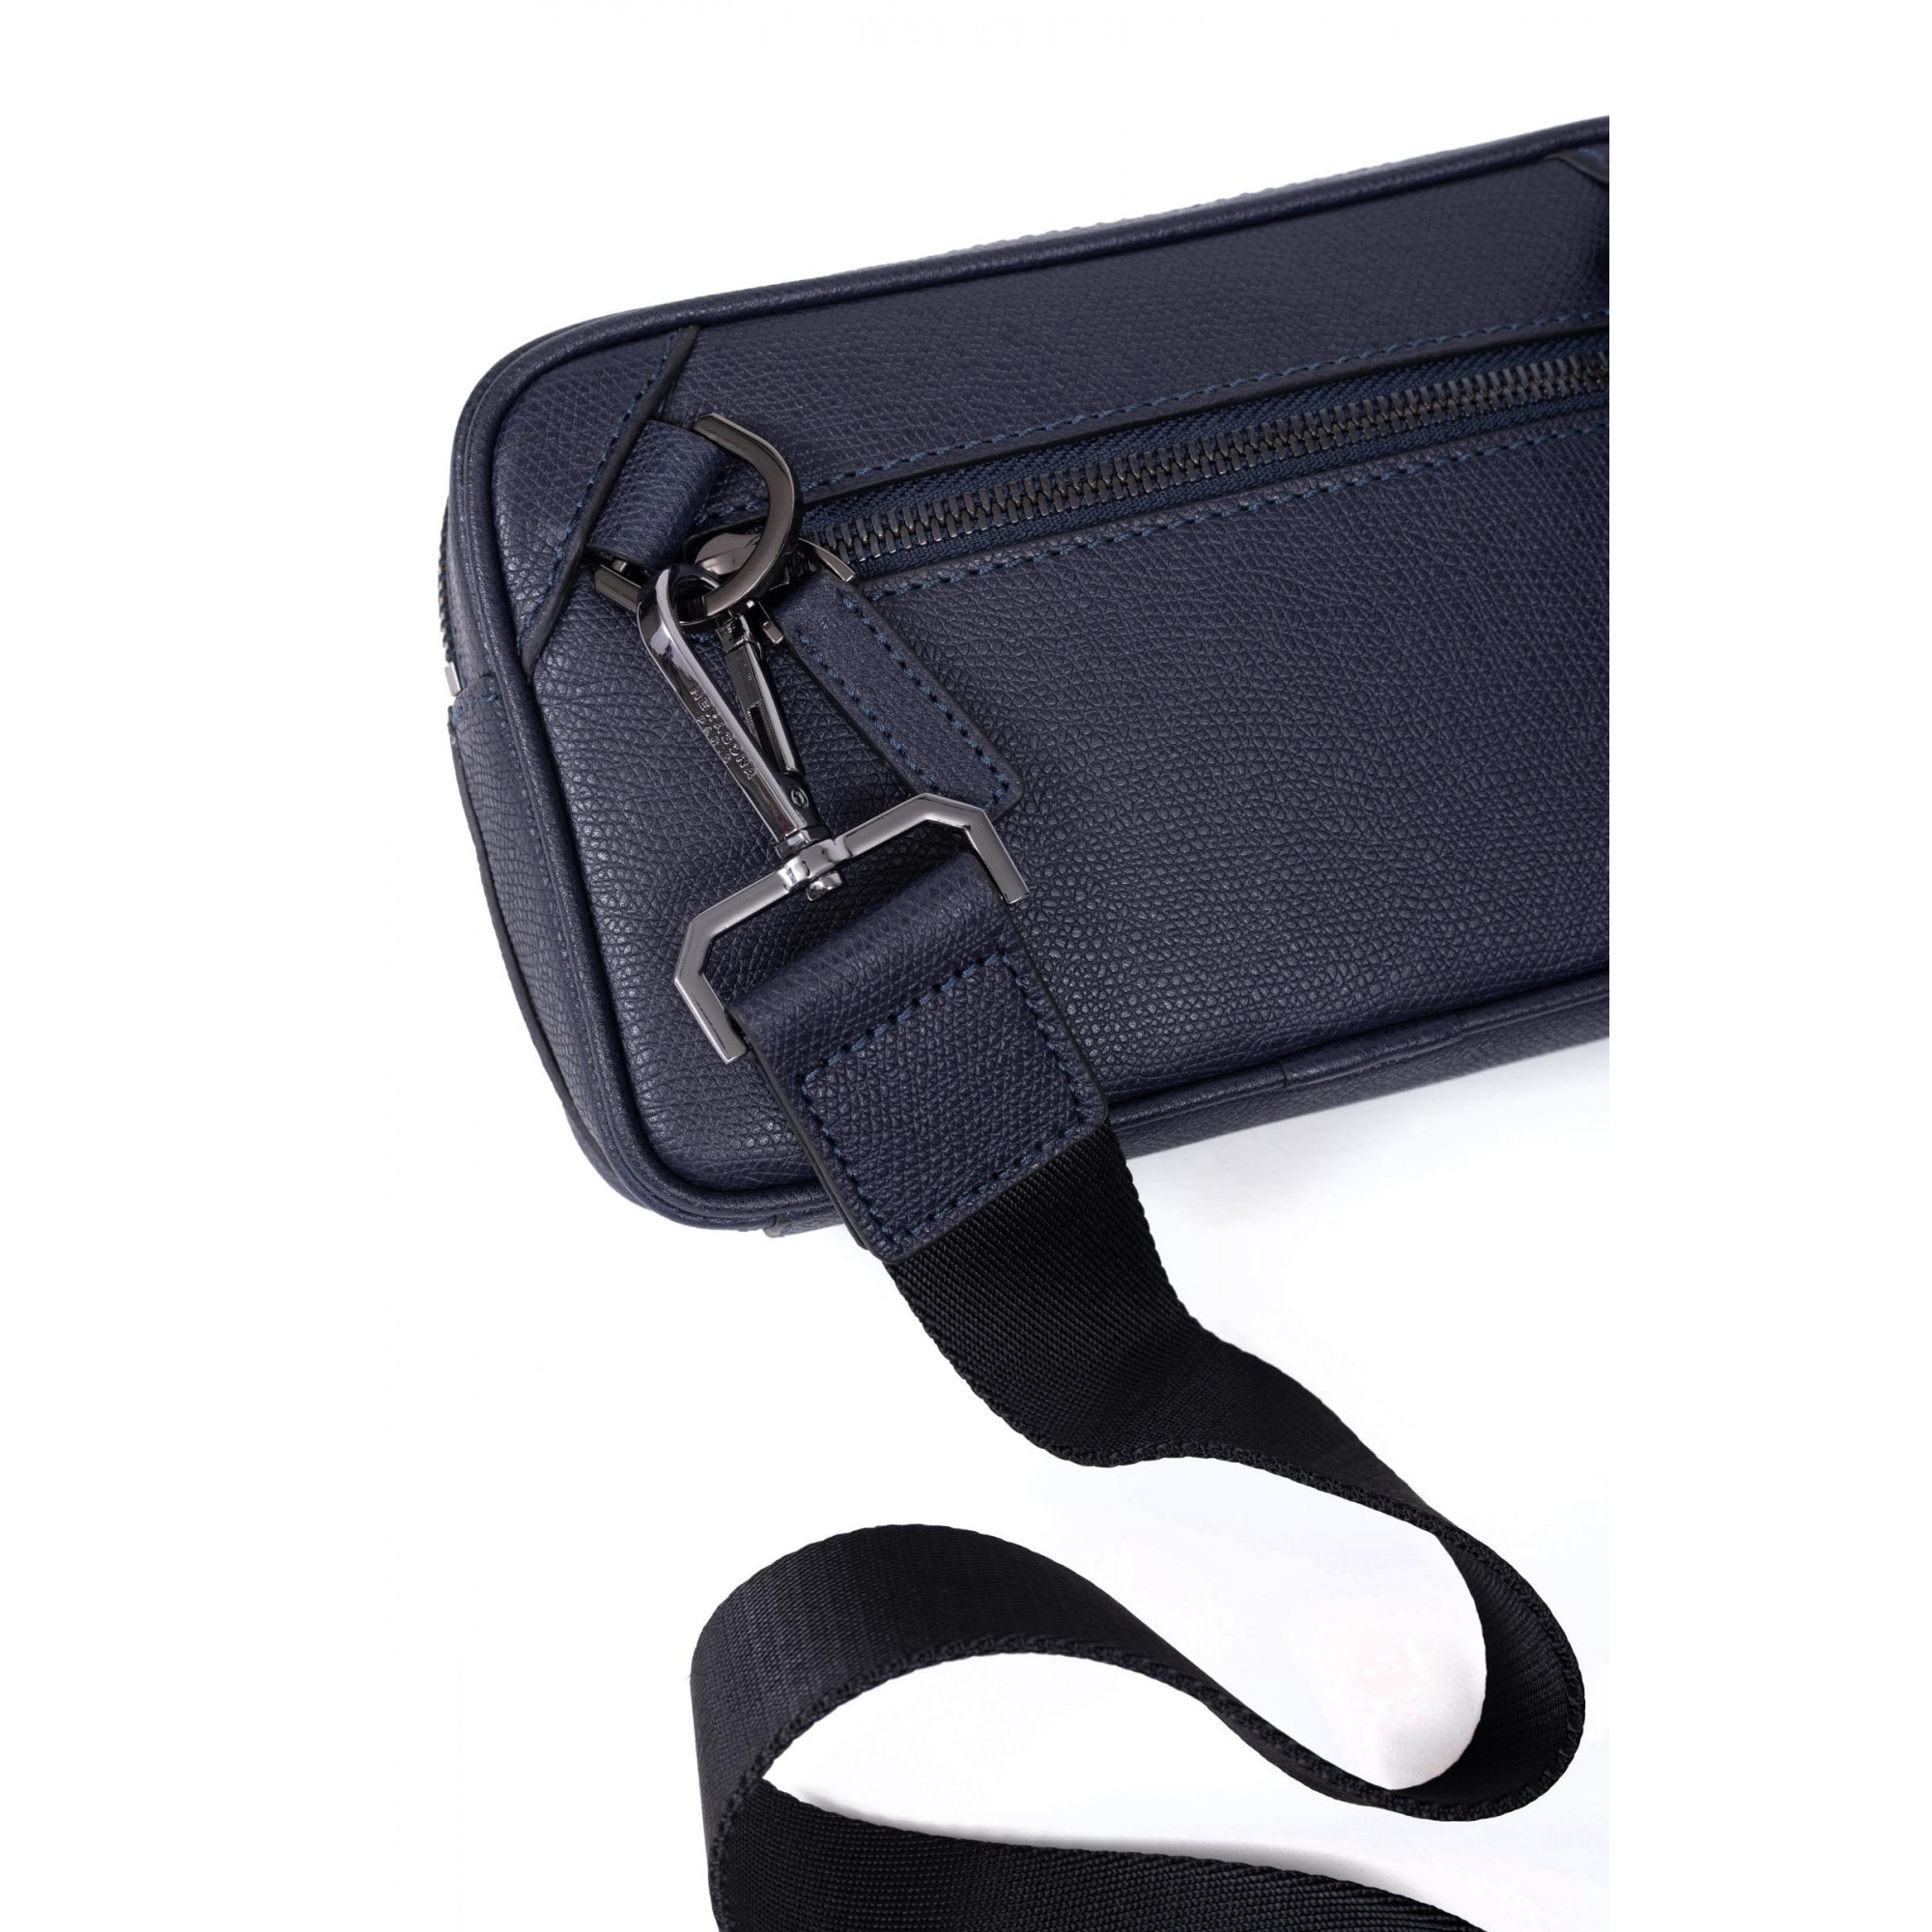 Premium grained leather hand clutch bag